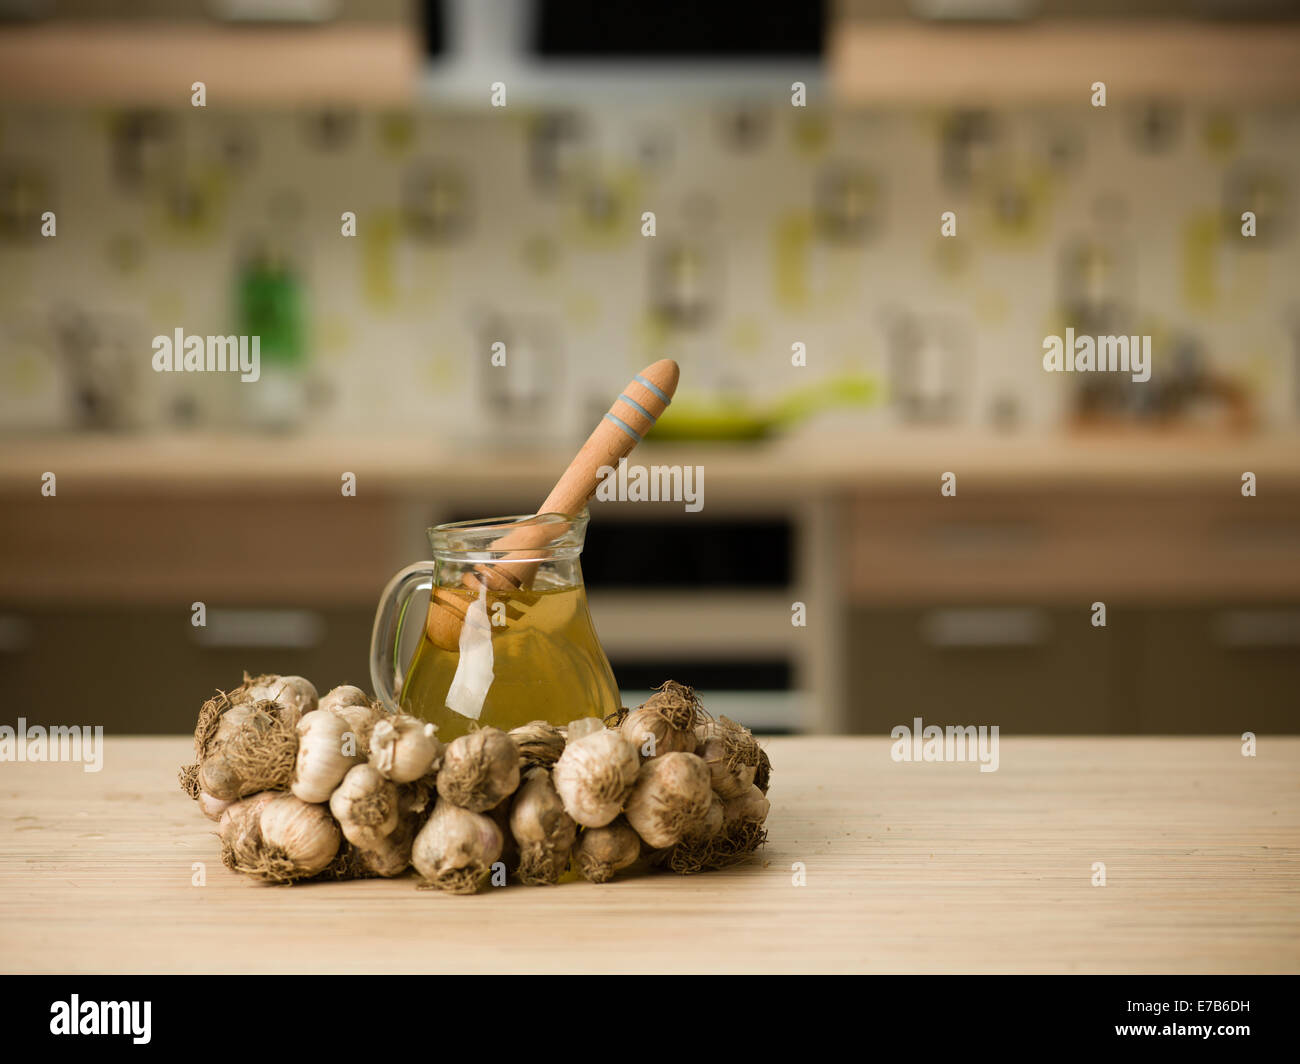 string of garlic surounding a jug with honey, on wooden kitchen table - Stock Image